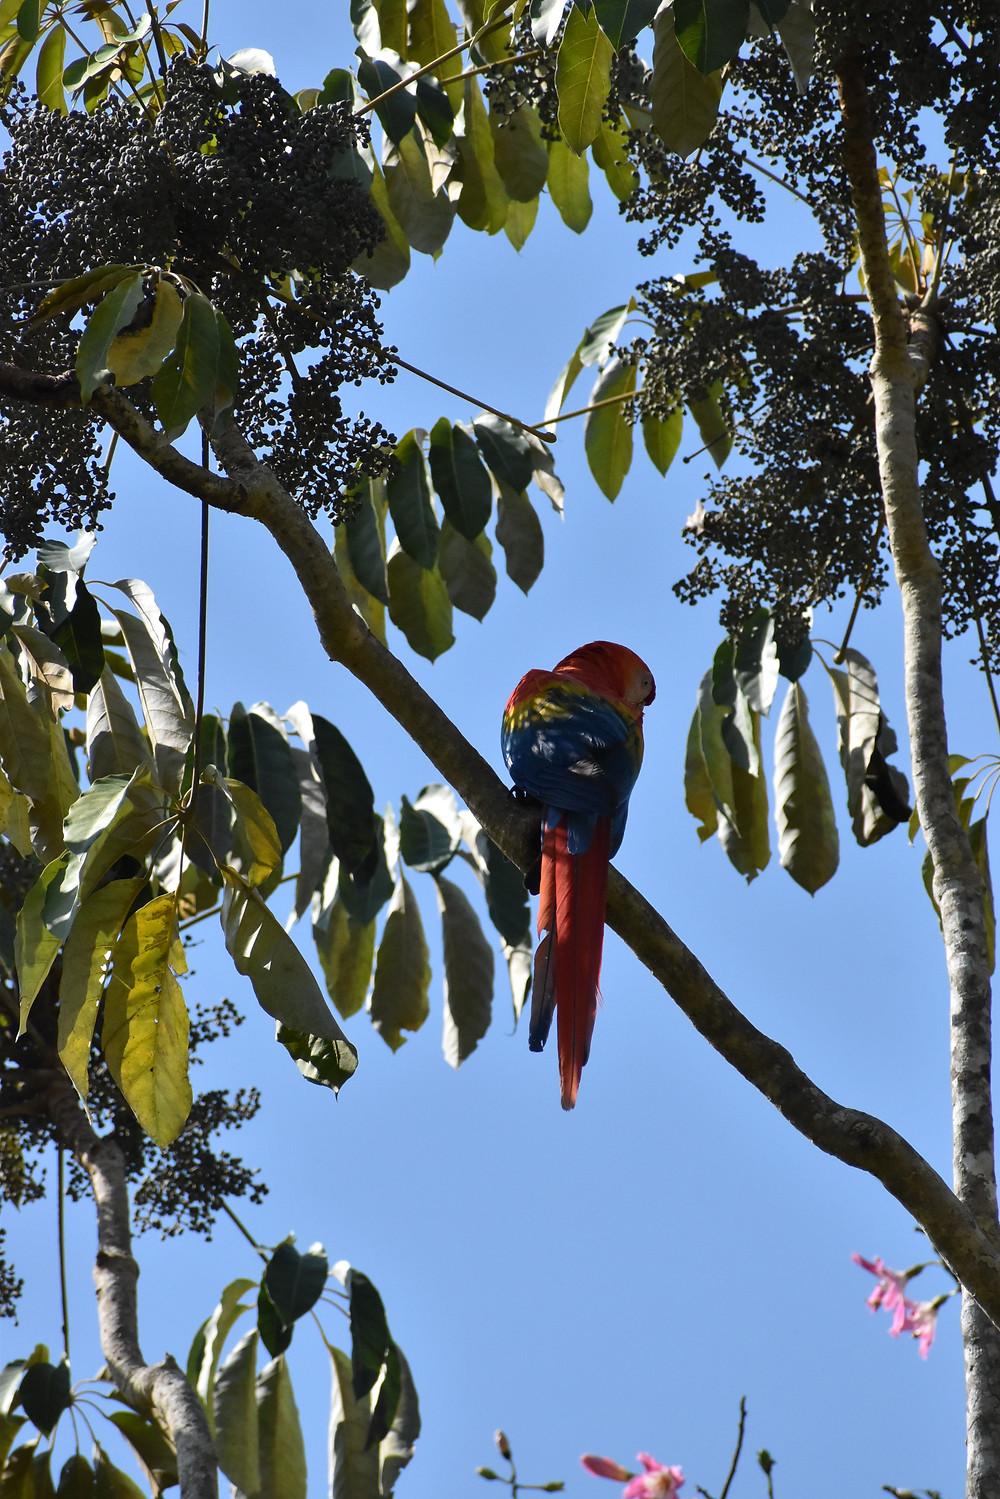 Macaw perched on a tree branch, silhouetted against a clear sky